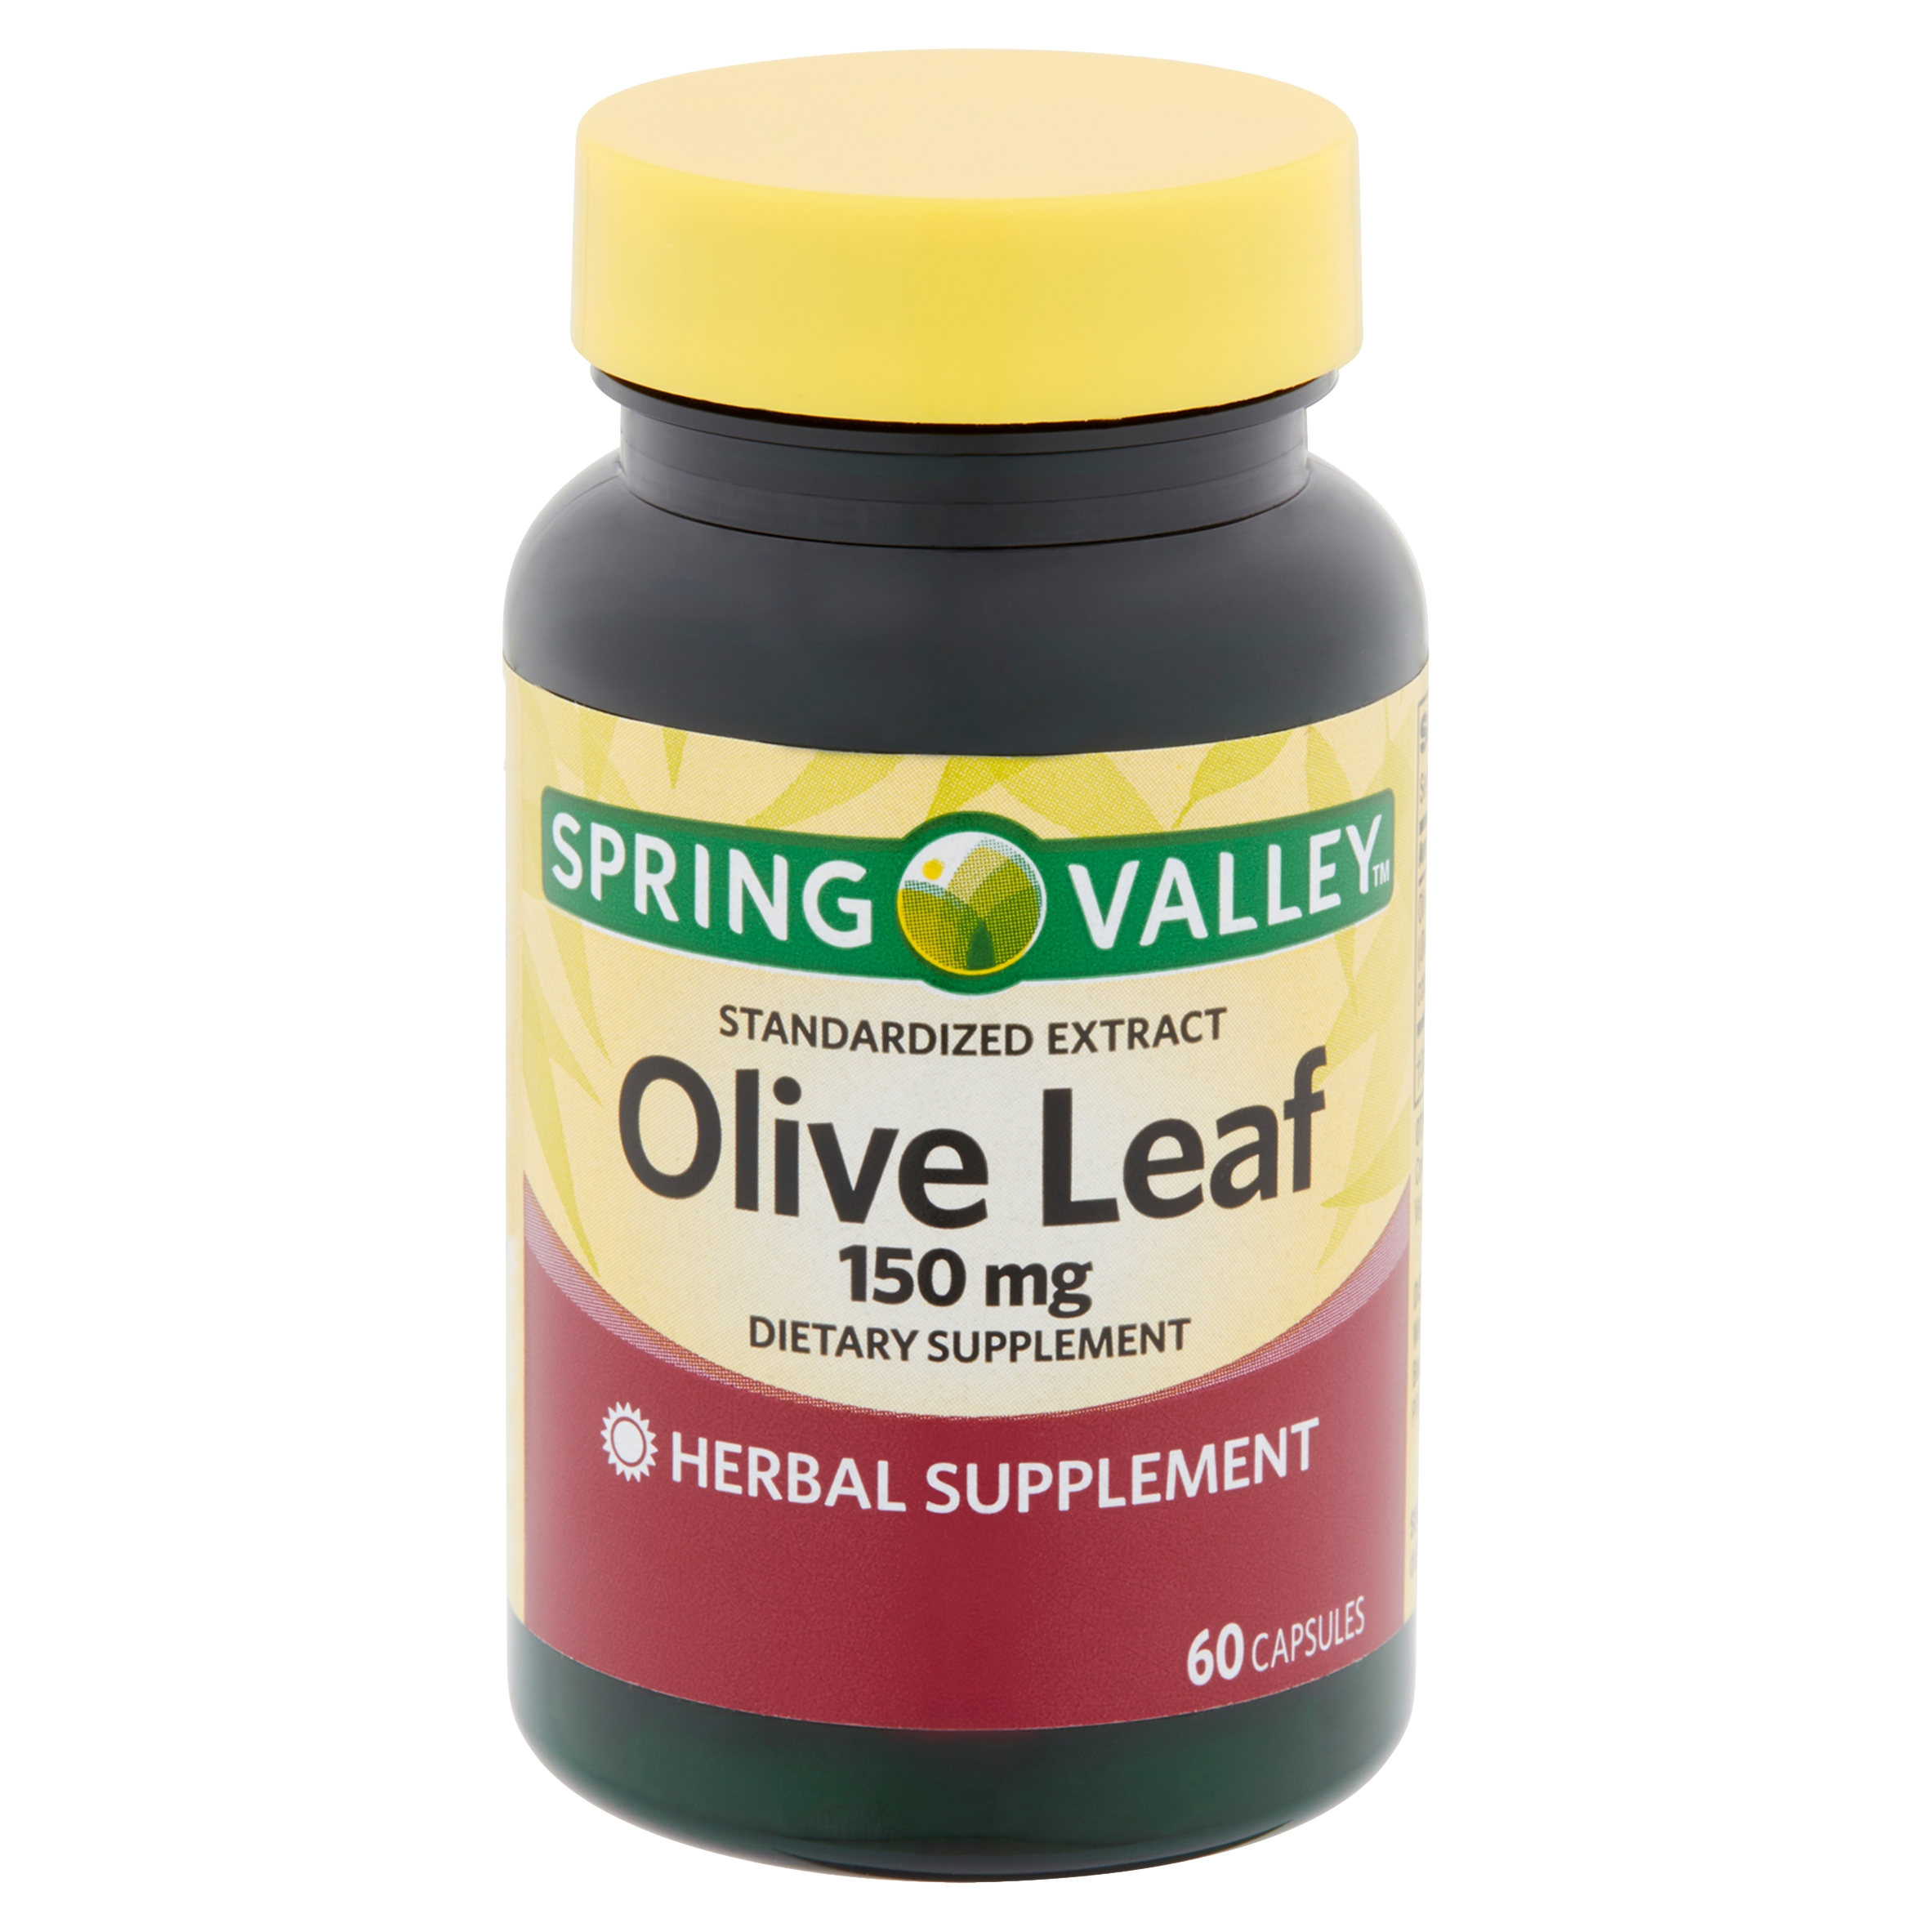 Spring Valley Standardized Extract Olive Leaf Capsules, 150 mg, 60 count